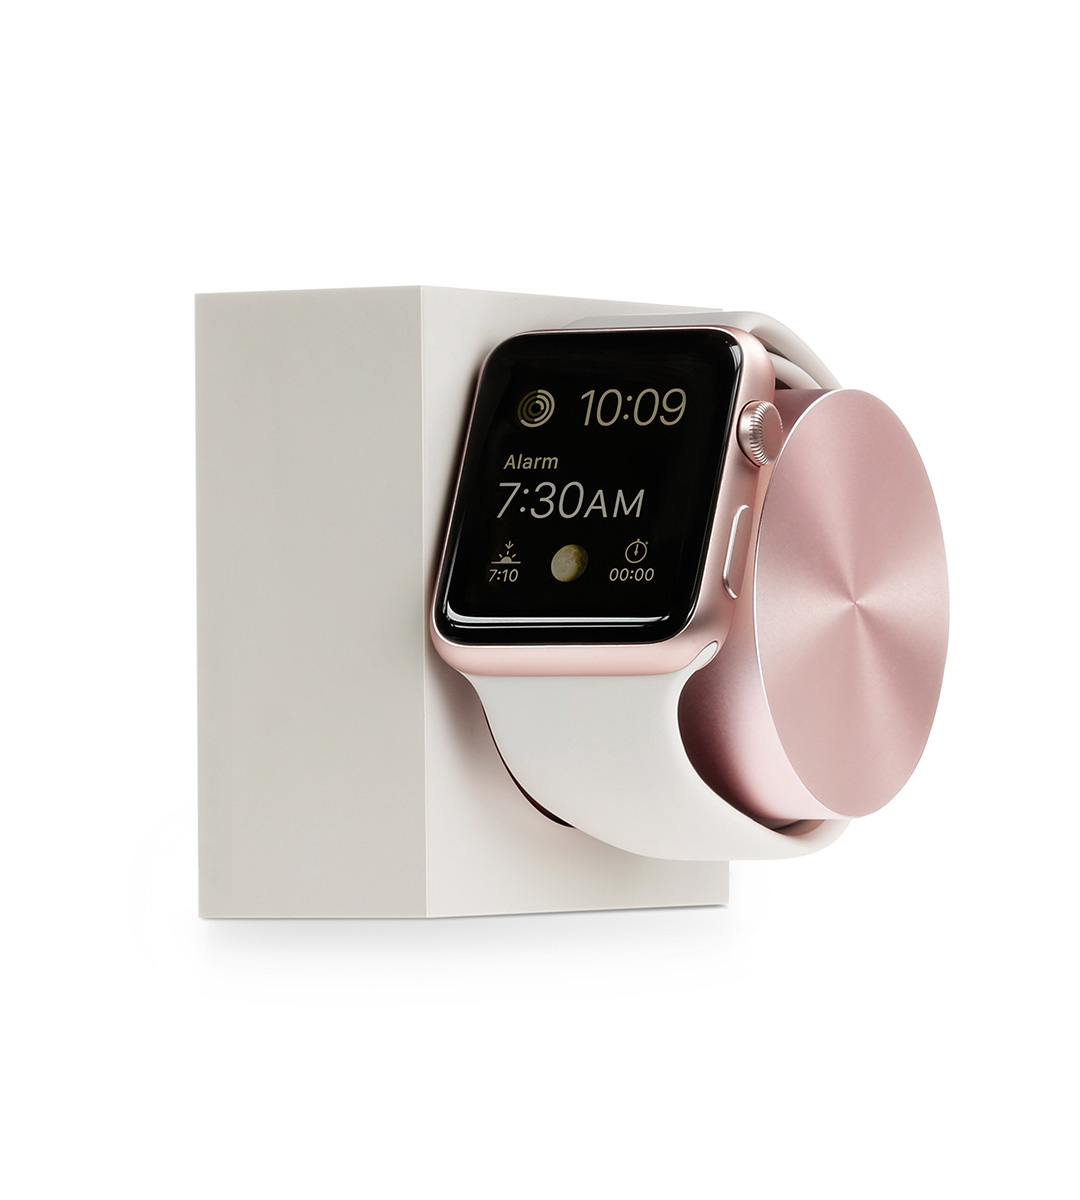 Nabíjecí stojánek pro Apple Watch 38mm / 42mm - Native Union, Dock Watch Silicon Stone